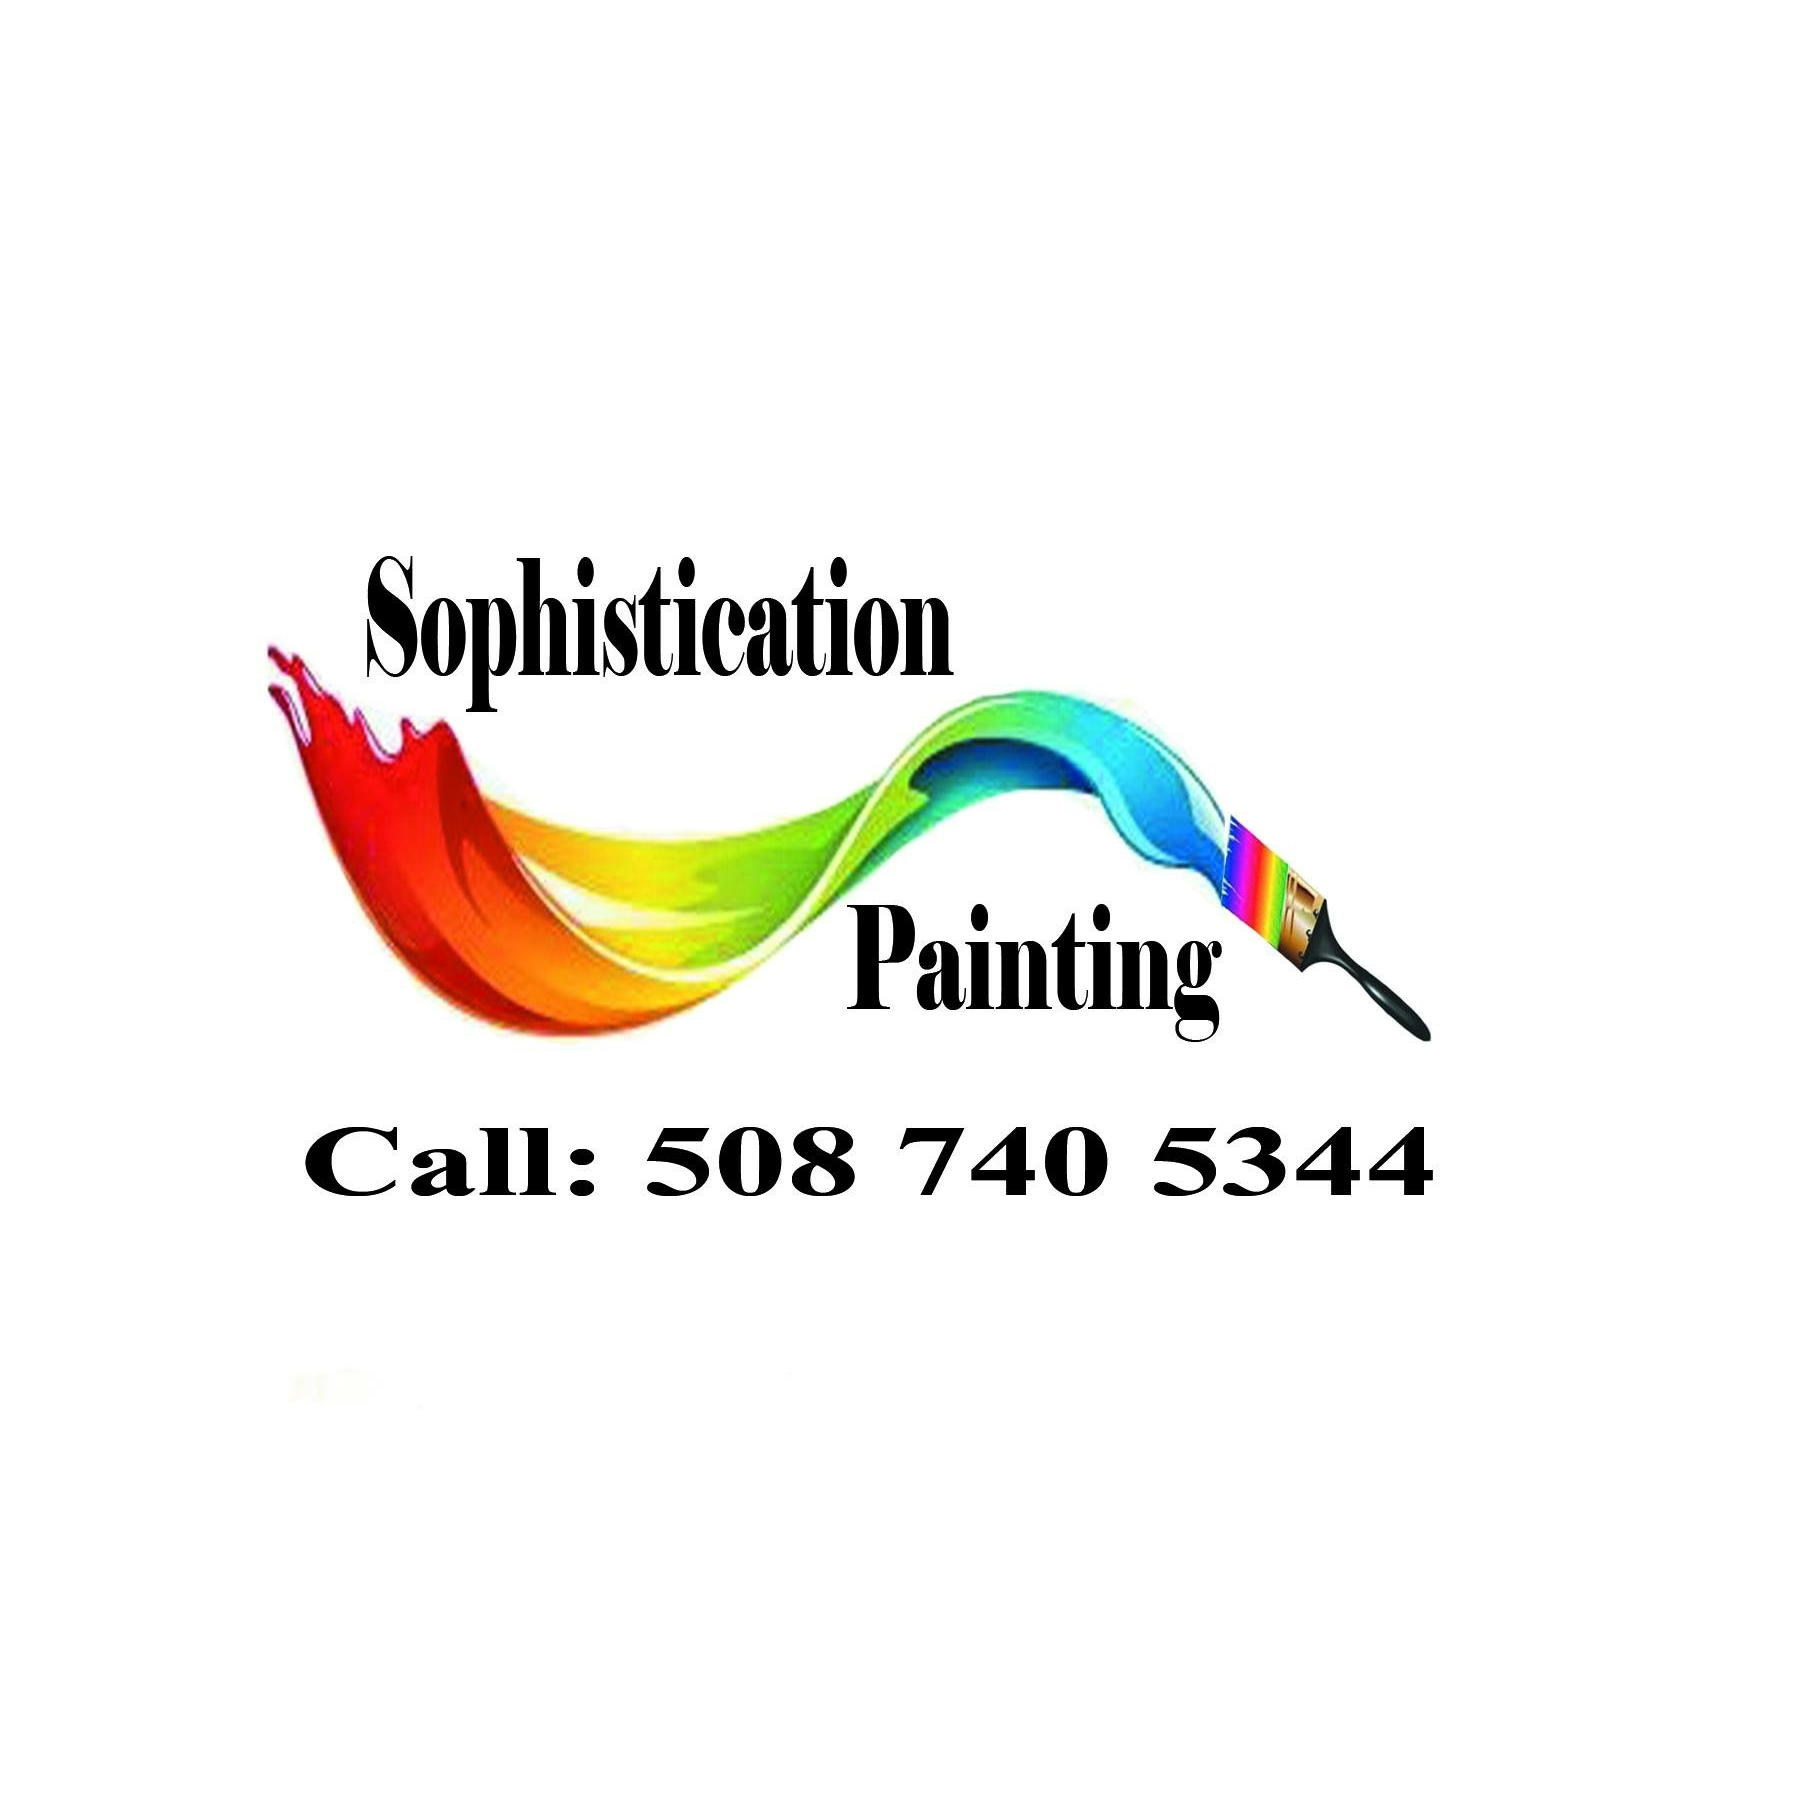 Sophistication Painting